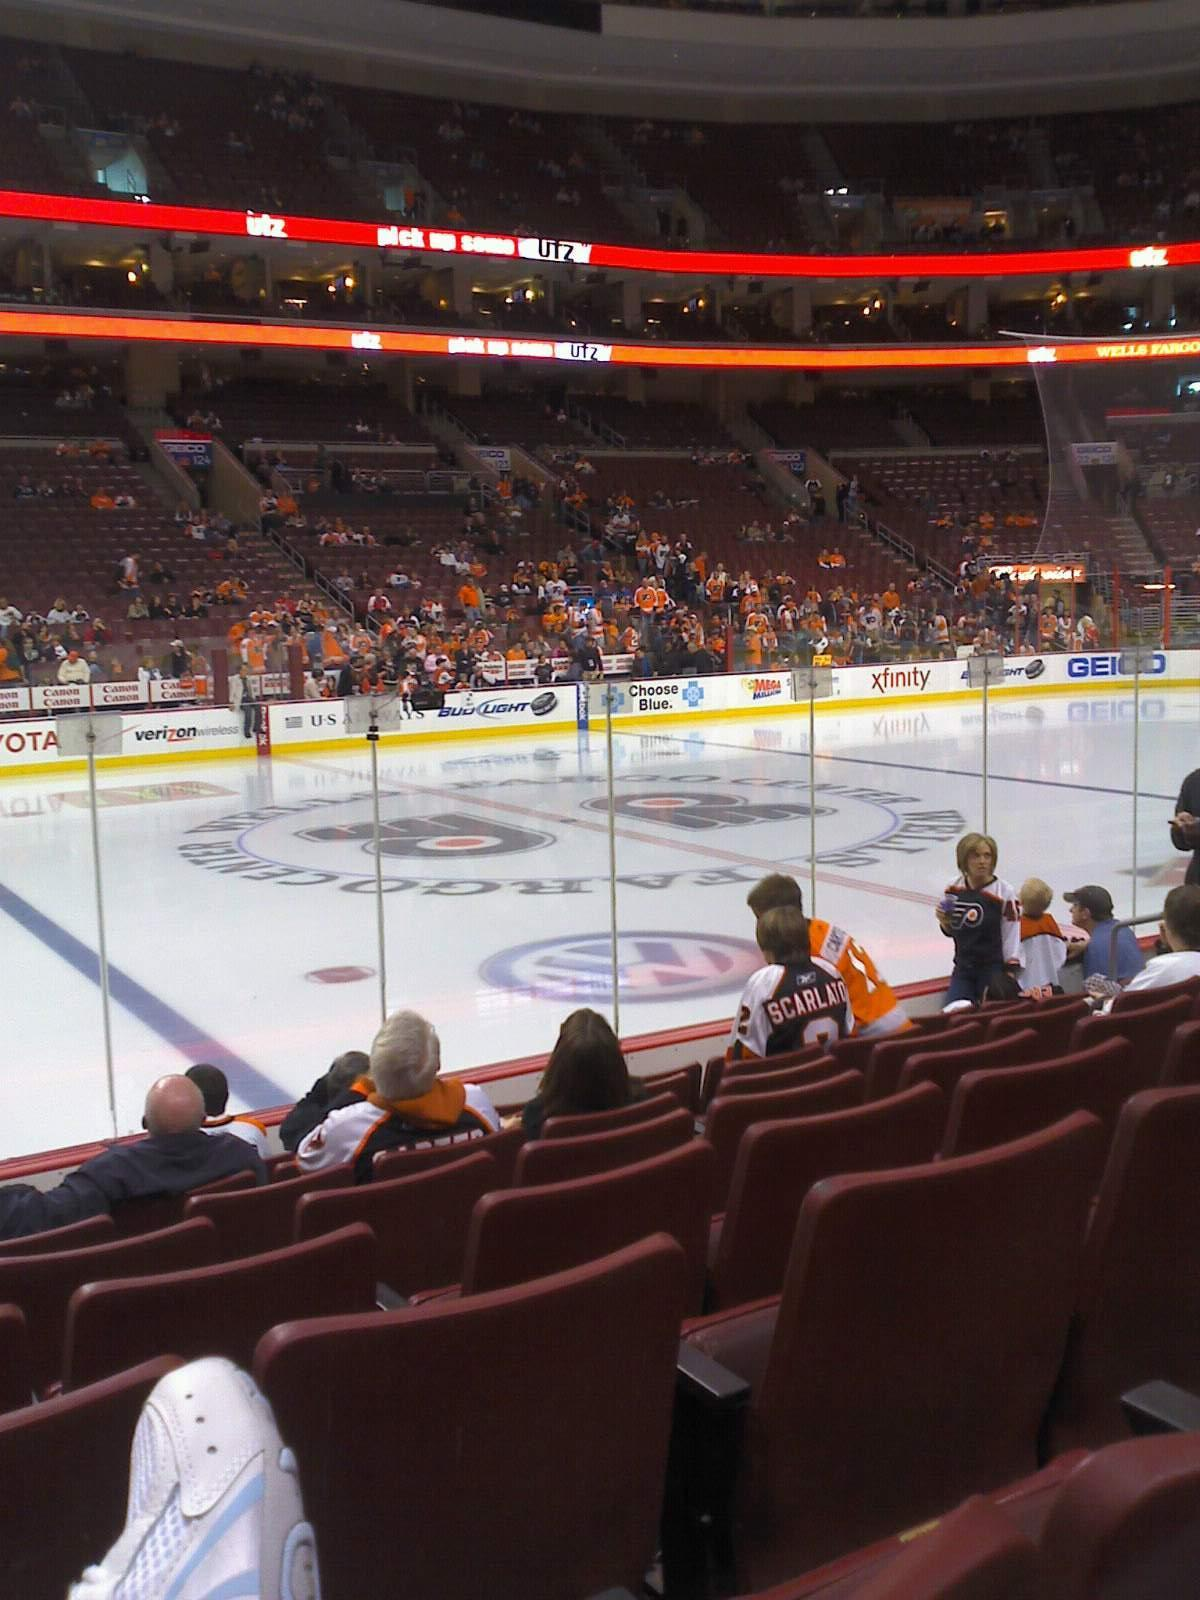 Wells Fargo Center Section 112 Row 8 Seat 8